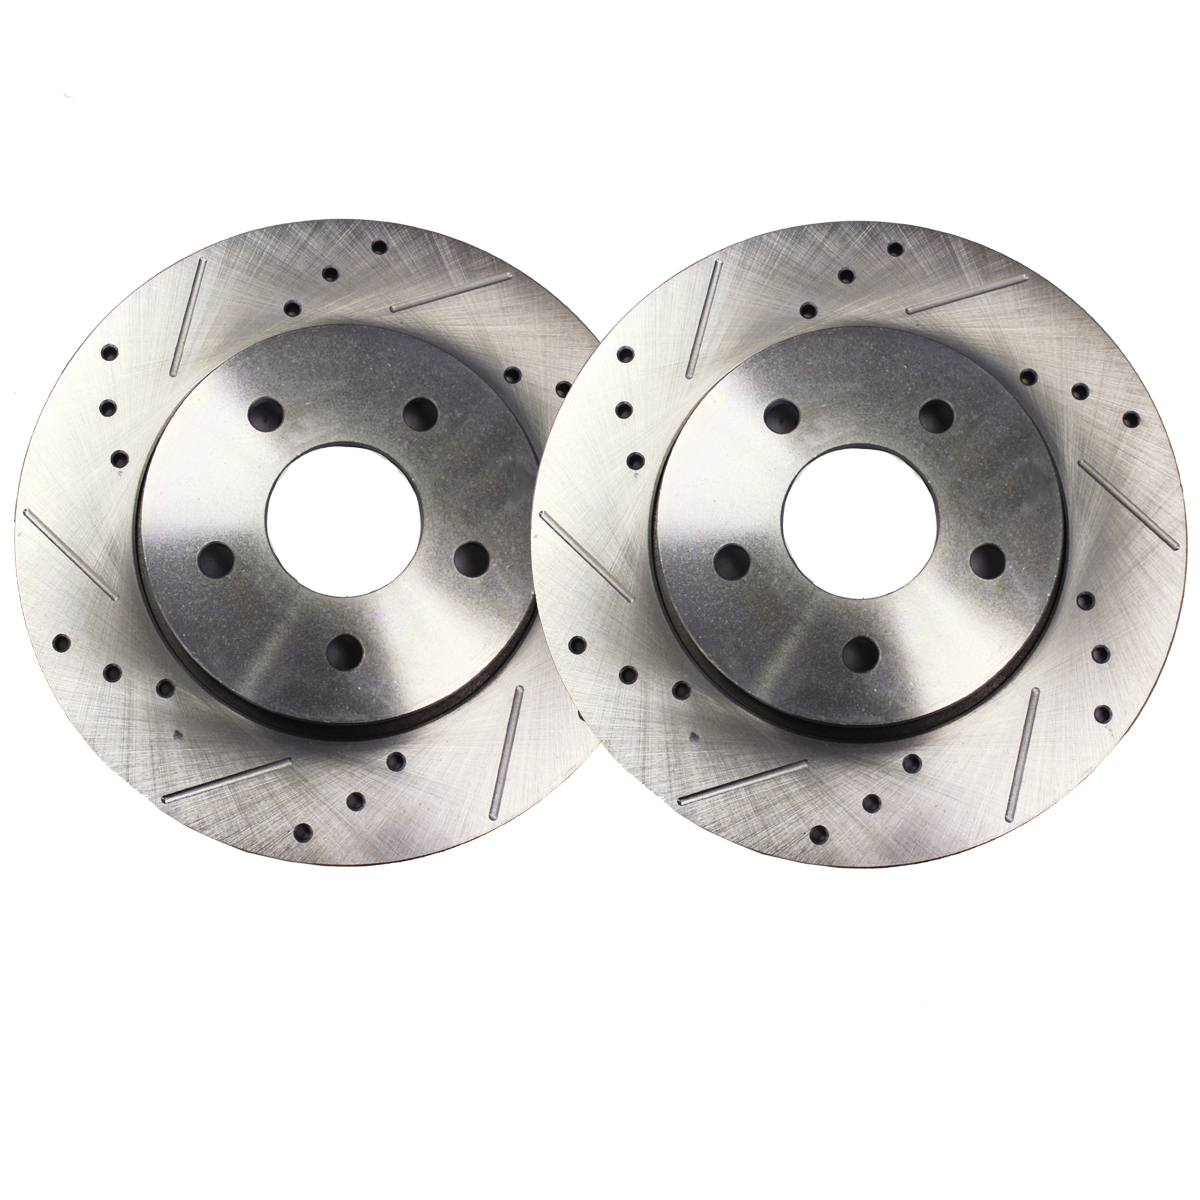 Front Drilled and Slotted Brake Rotors #S-54154 - Ford & Lincoln